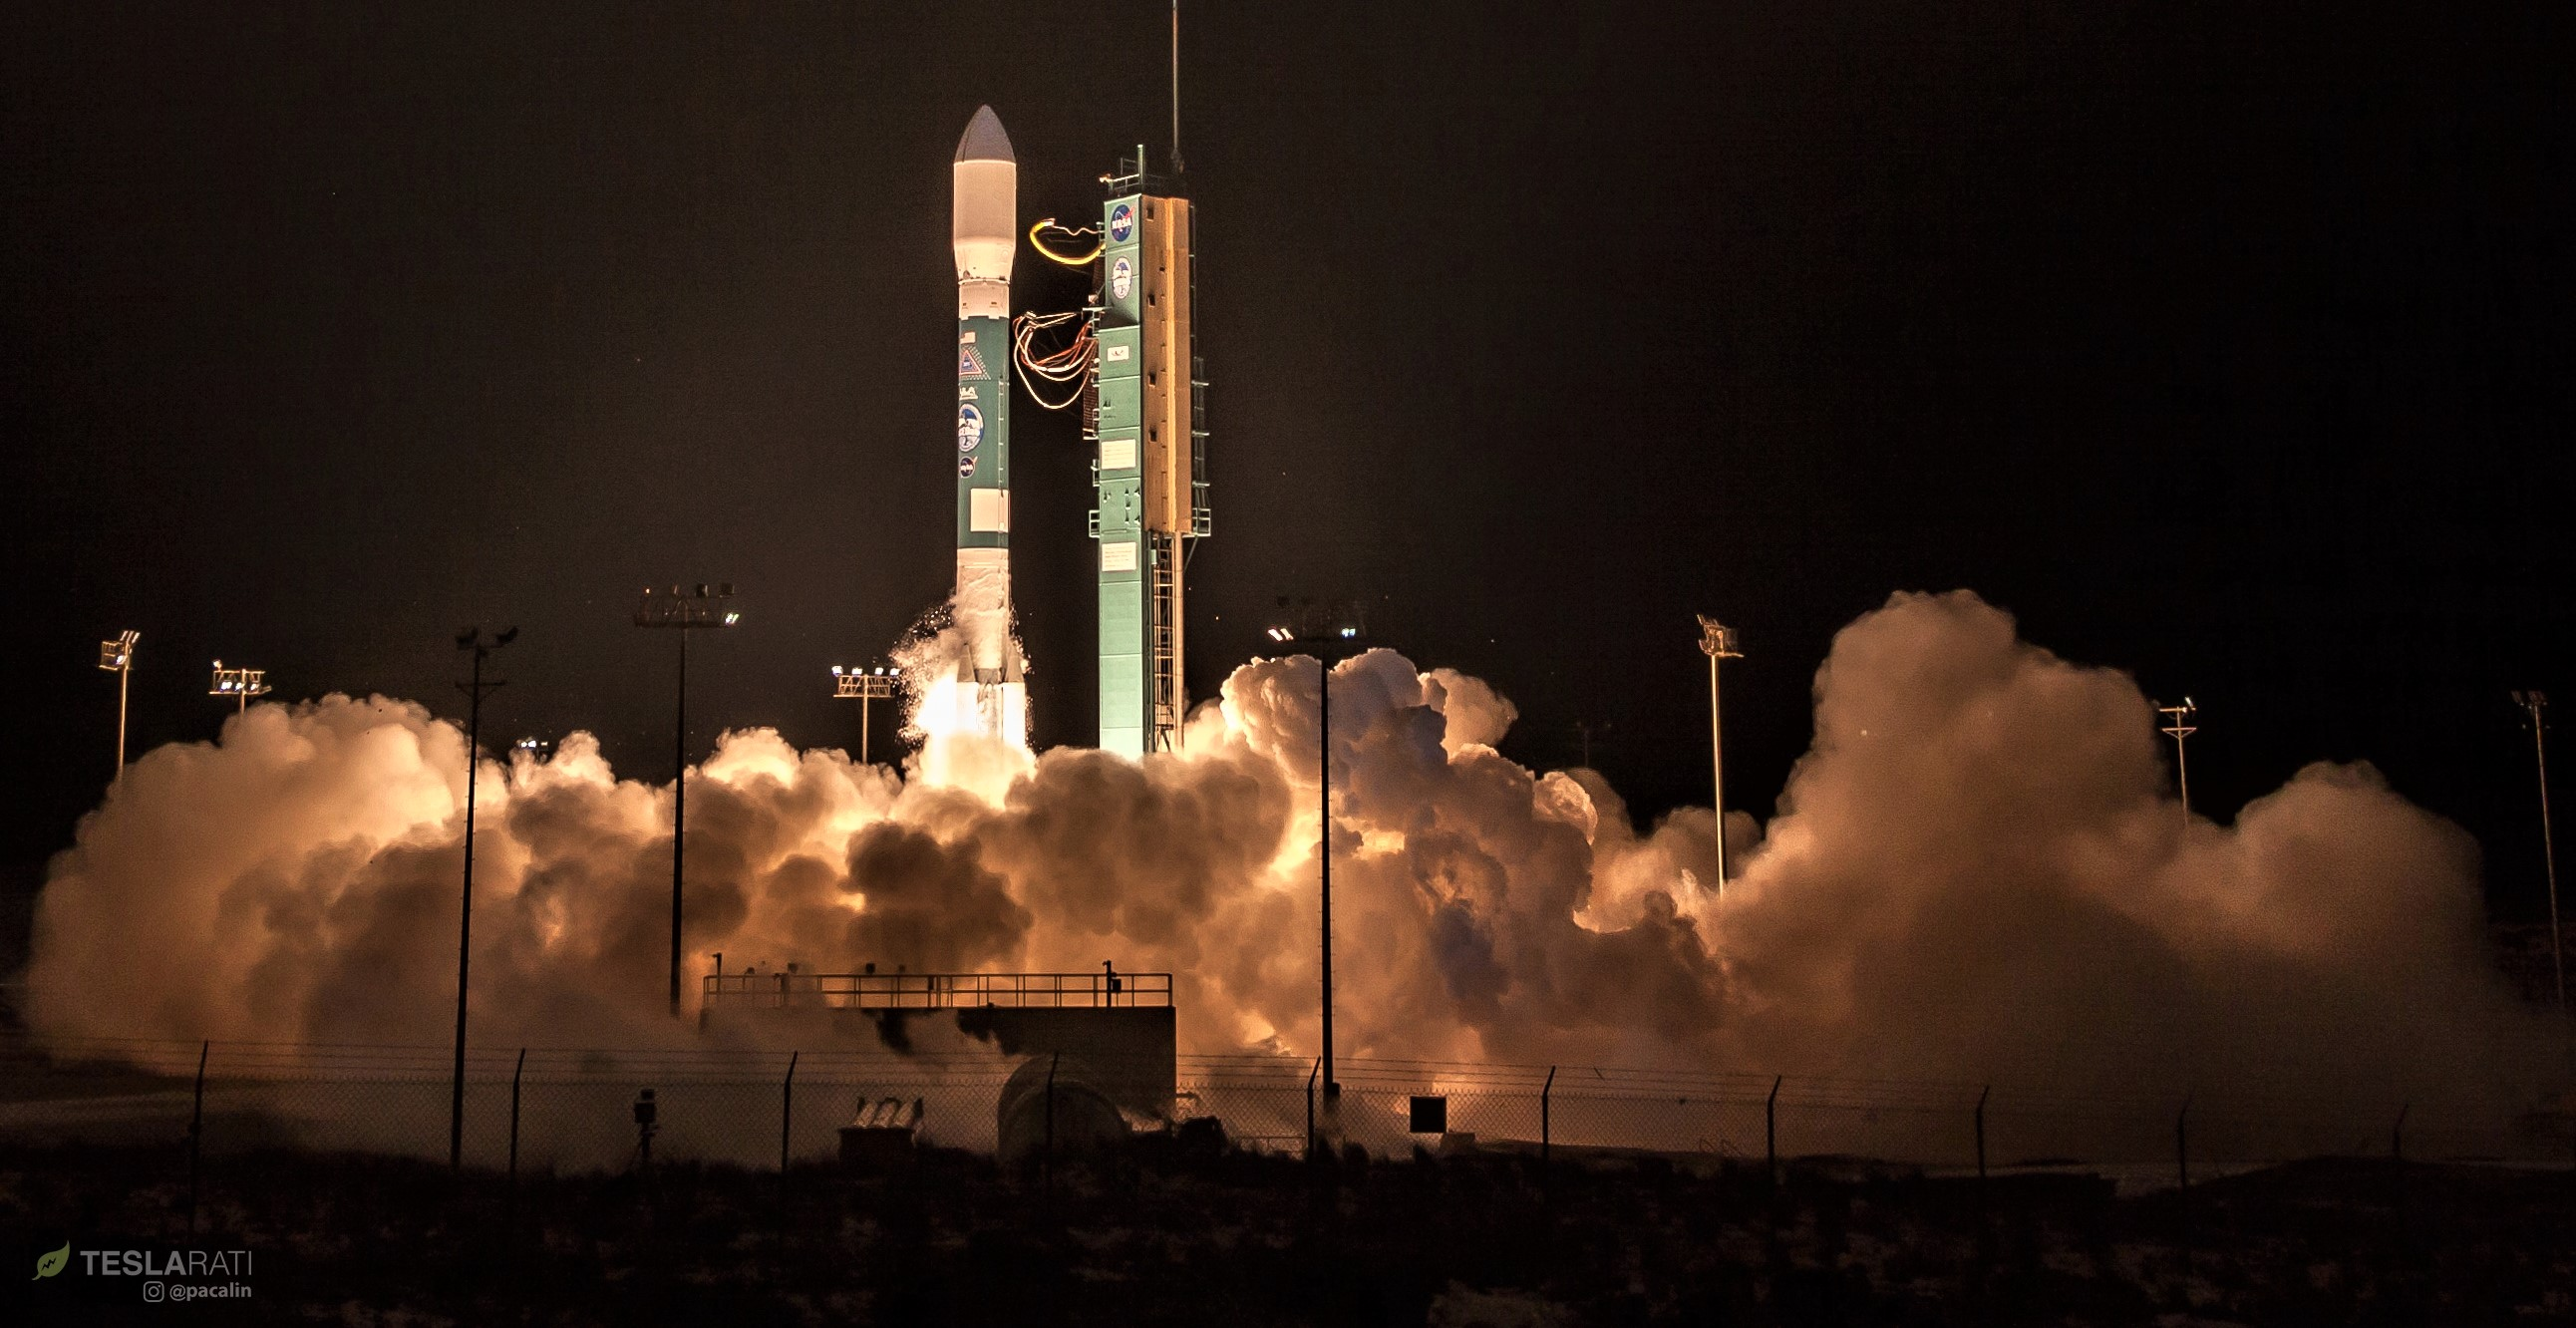 ULA readies its last Delta II to launch NASA's ICESat-2 mission